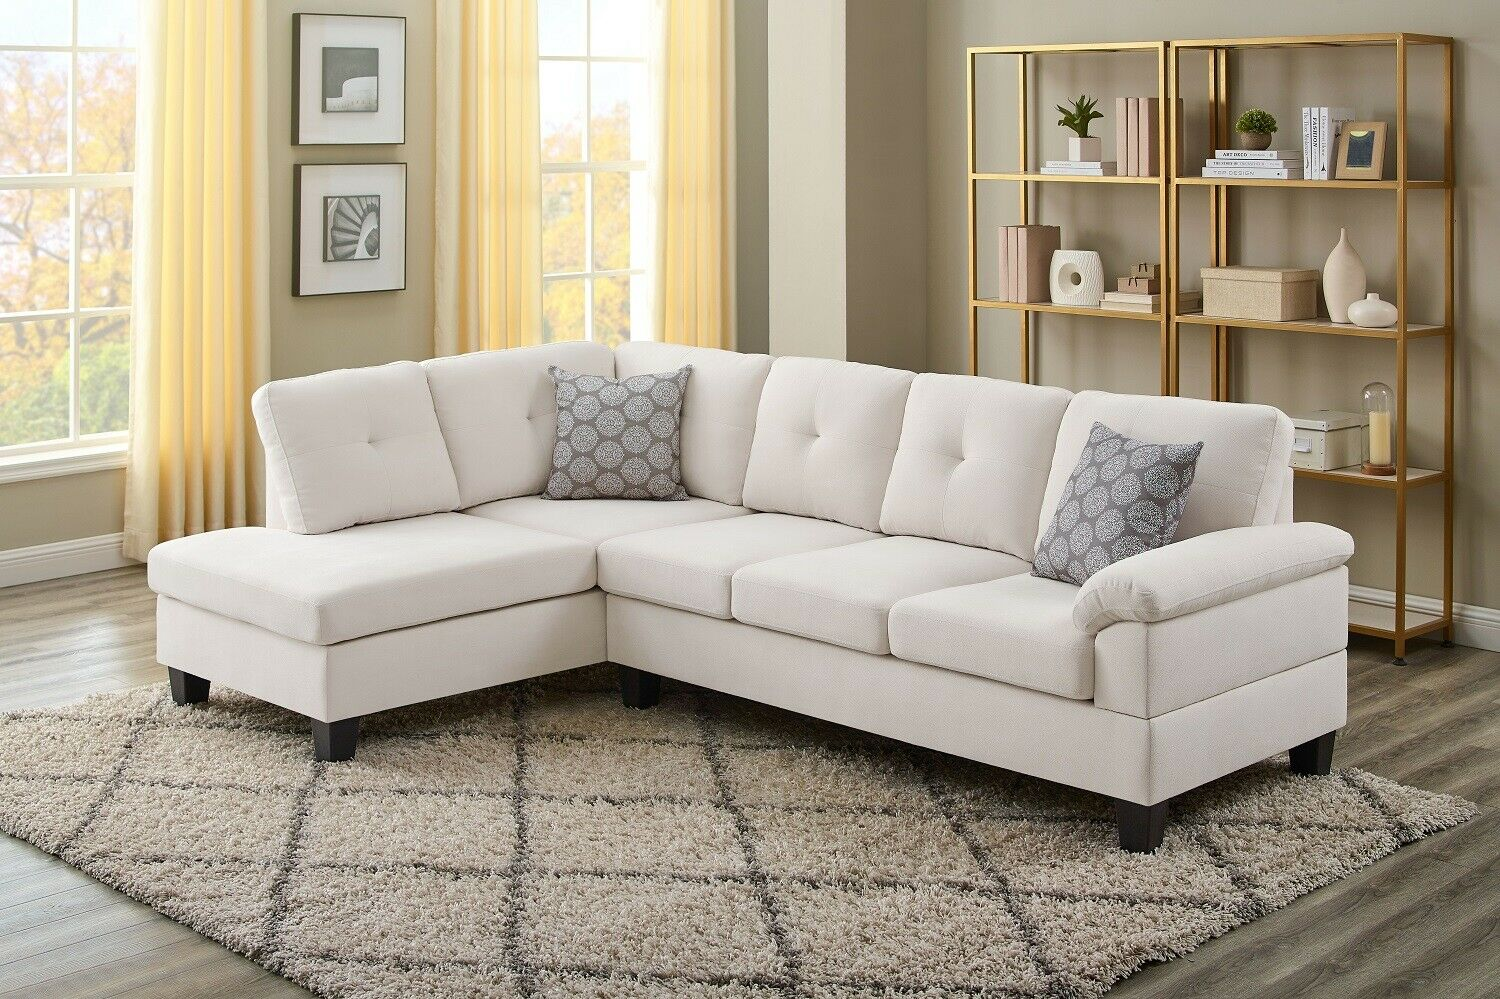 Picture of: Small Sectional Sofa Reversible Chaise Couch Love Seat Living Room Set Apartment For Sale Online Ebay